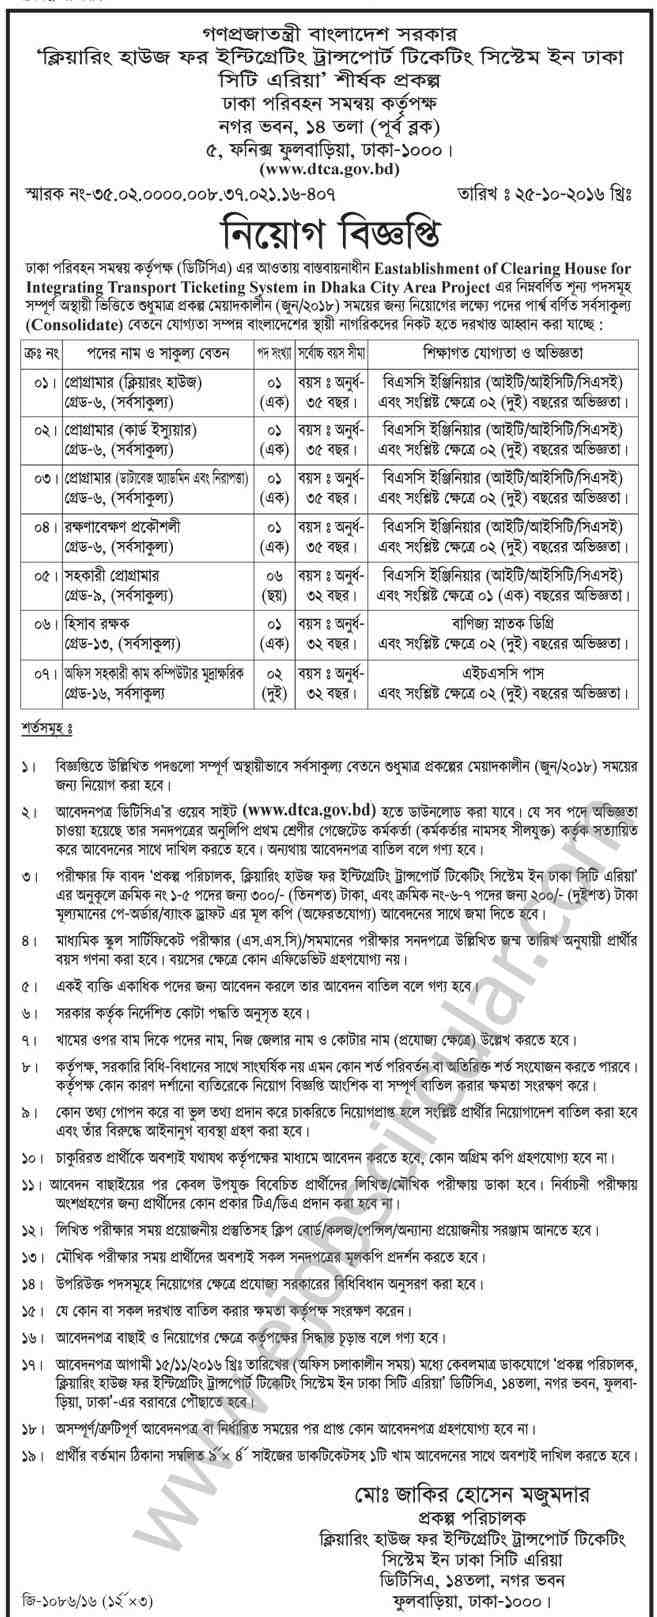 Dhaka Transport Coordination Authority Job